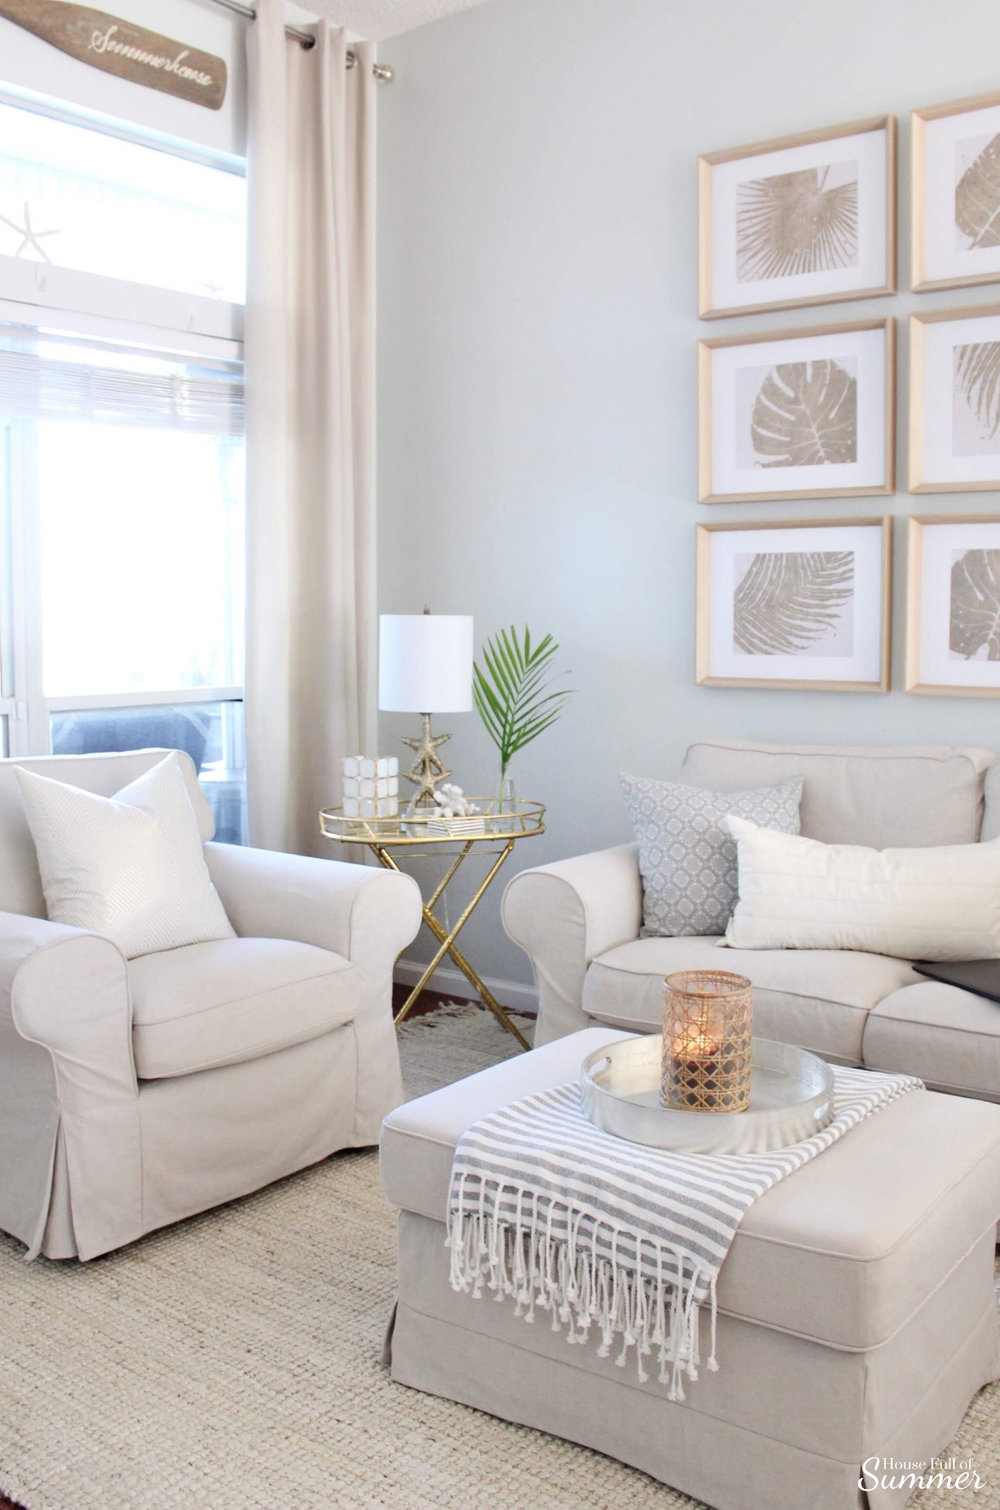 Styling My Coastal Living Room for Winter | House Full of Summer - coastal decor, living room decor, decorating for winter, neutral furniture, jute rug, gallery wall, palm fronds, gray paint color, Sherwin Williams